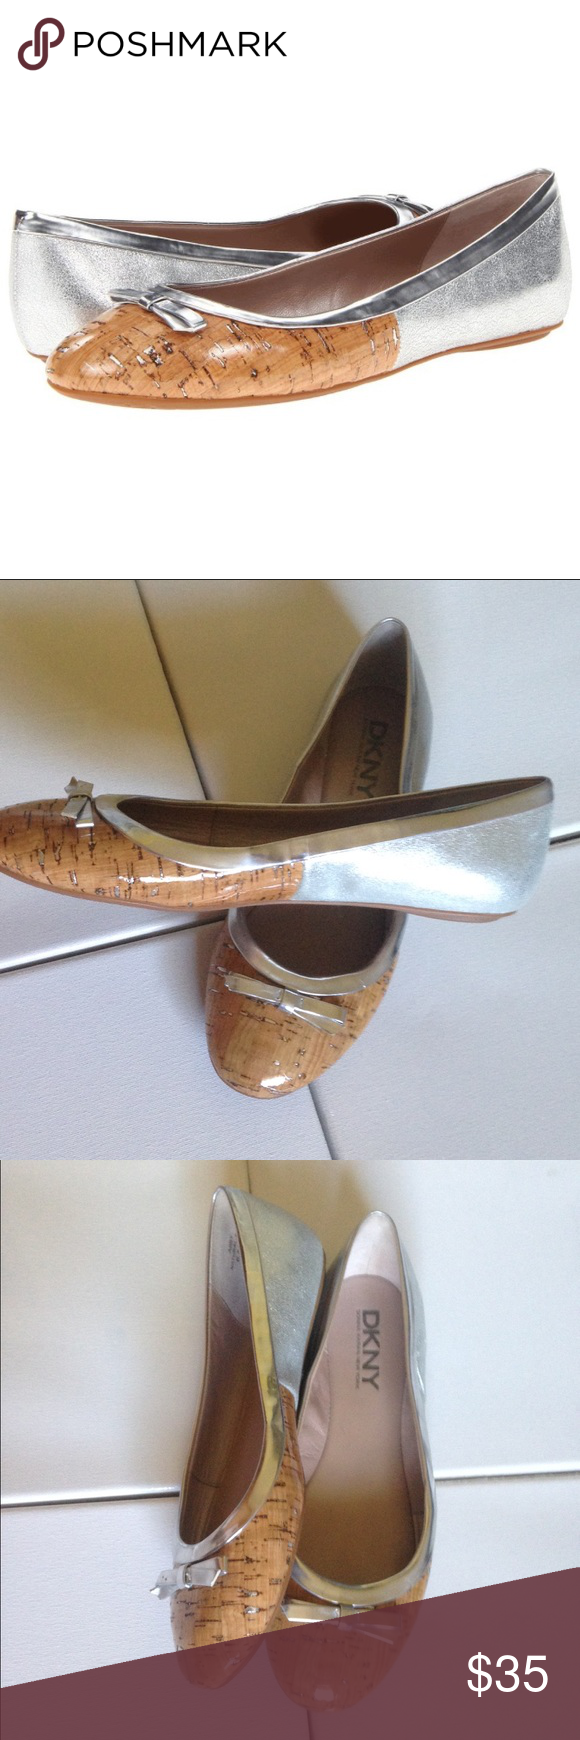 "DKNY ""Abby"" flats Super cute DKNY flats, the style is ""Abby"" in silver. In new condition! DKNY Shoes Flats & Loafers"